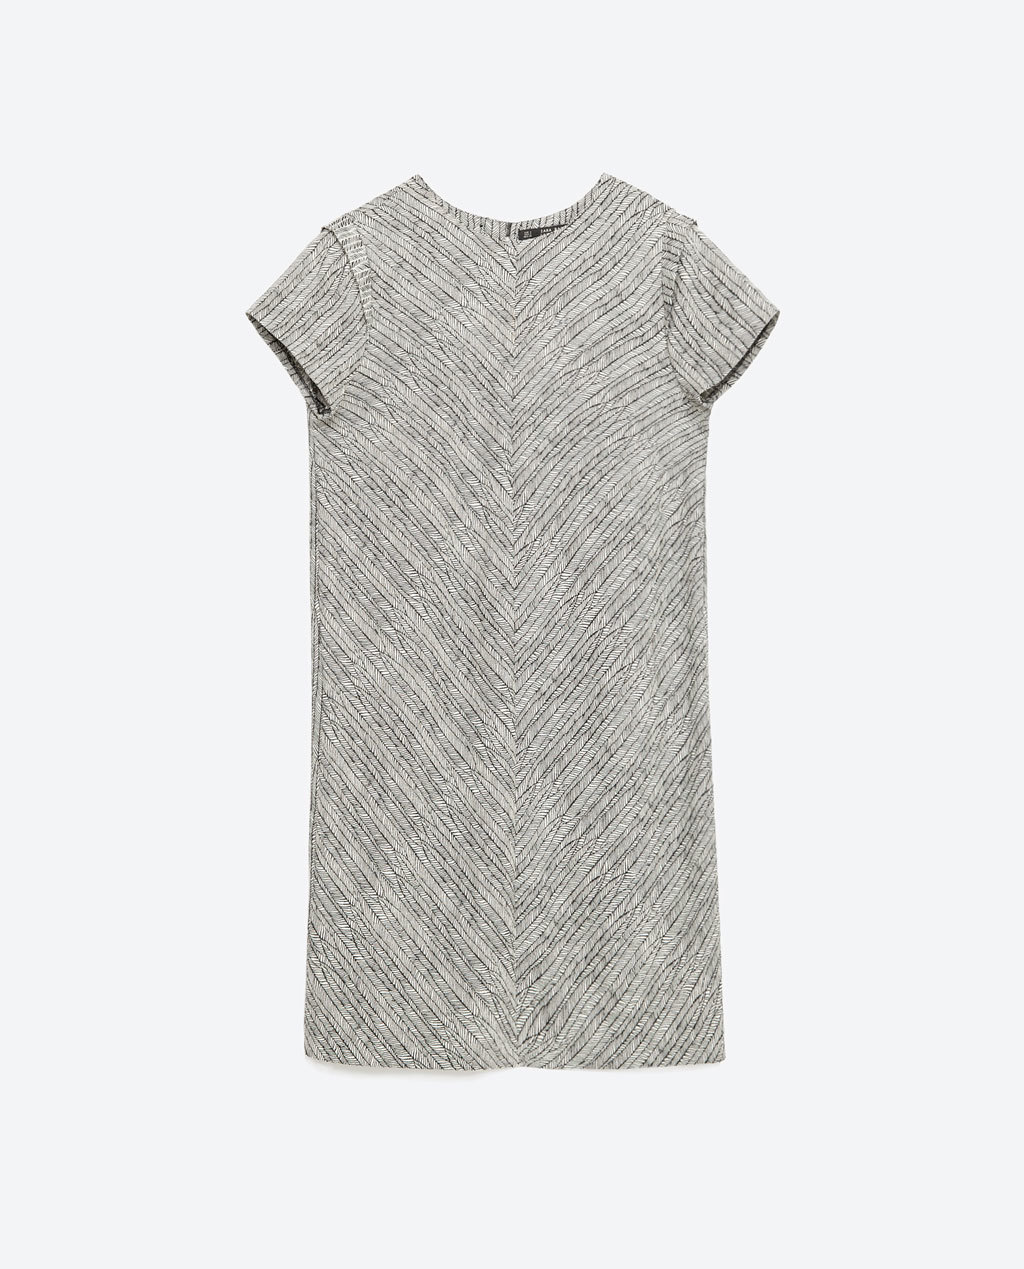 Straight Jacquard Dress - style: shift; length: mid thigh; sleeve style: capped; secondary colour: mid grey; predominant colour: light grey; occasions: casual, work, creative work; fit: straight cut; fibres: polyester/polyamide - stretch; neckline: crew; sleeve length: short sleeve; pattern type: fabric; pattern size: standard; pattern: patterned/print; texture group: brocade/jacquard; season: s/s 2016; wardrobe: highlight